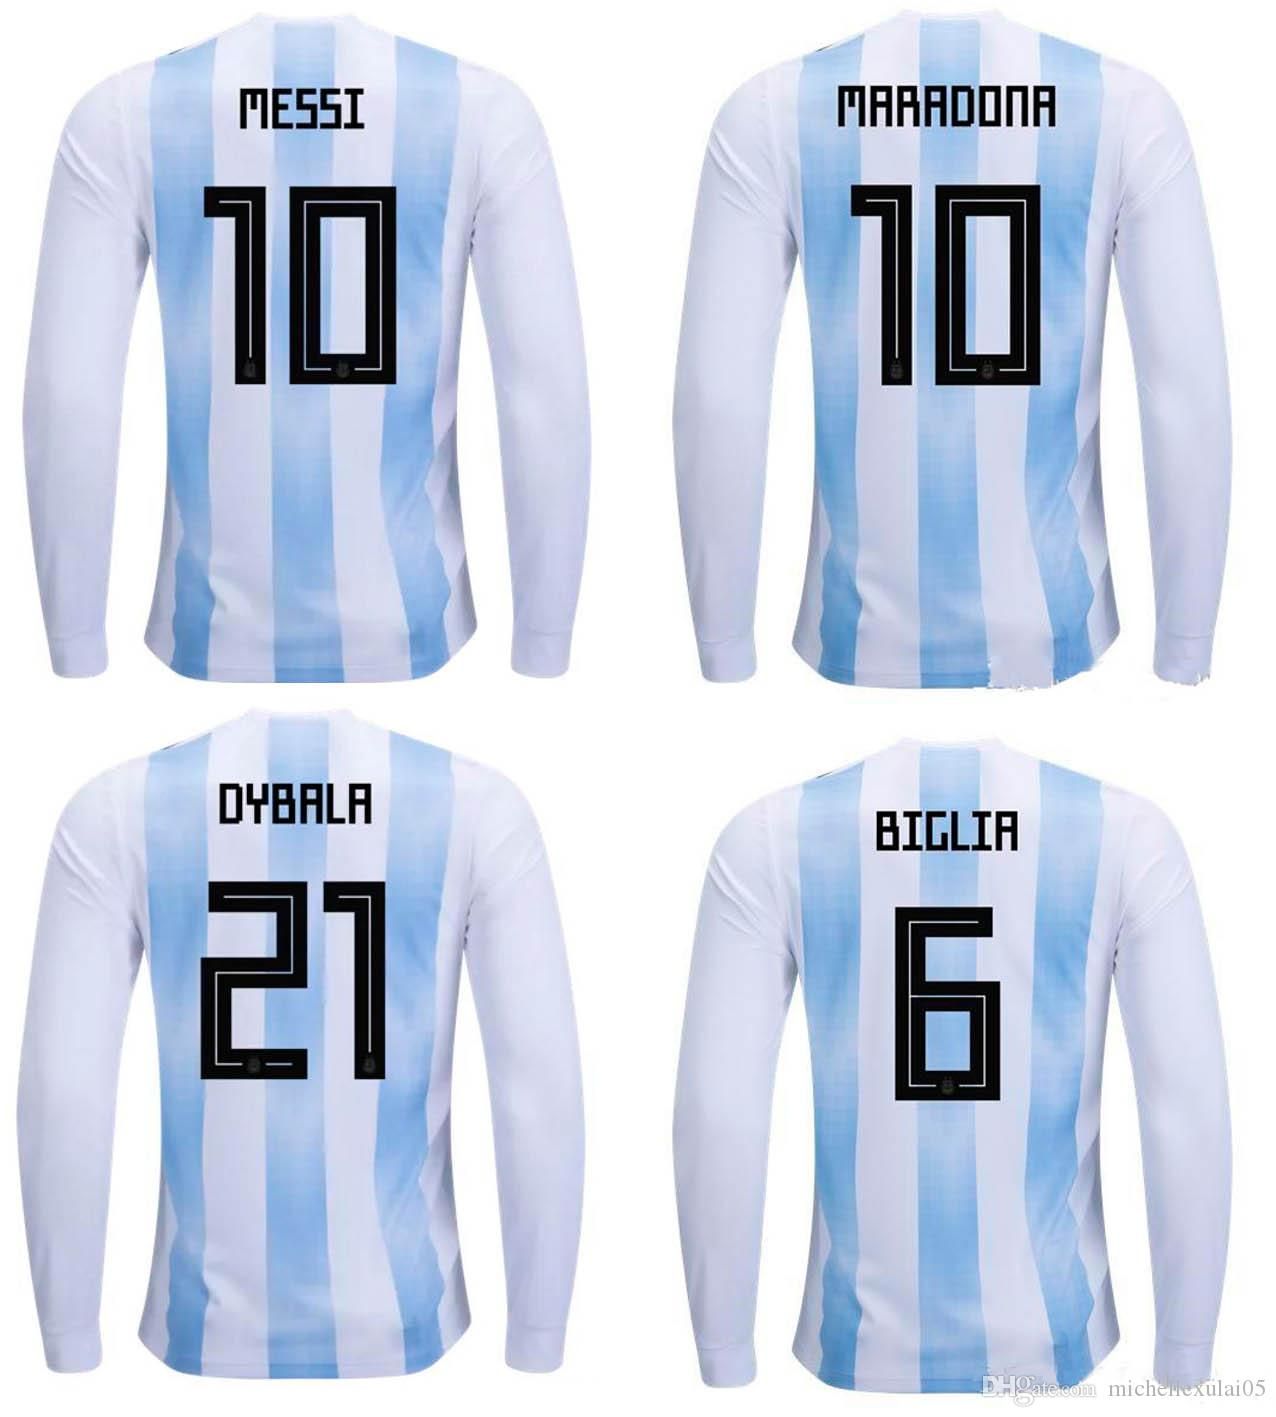 18 19 Argentina Soccer Jersey Messi Aguero Di Maria ICARDI MARADONA Long  Sleeve Football Shirts World Cup 2018 Argentina Soccer Uniforms Full Sleeve  Soccer ...